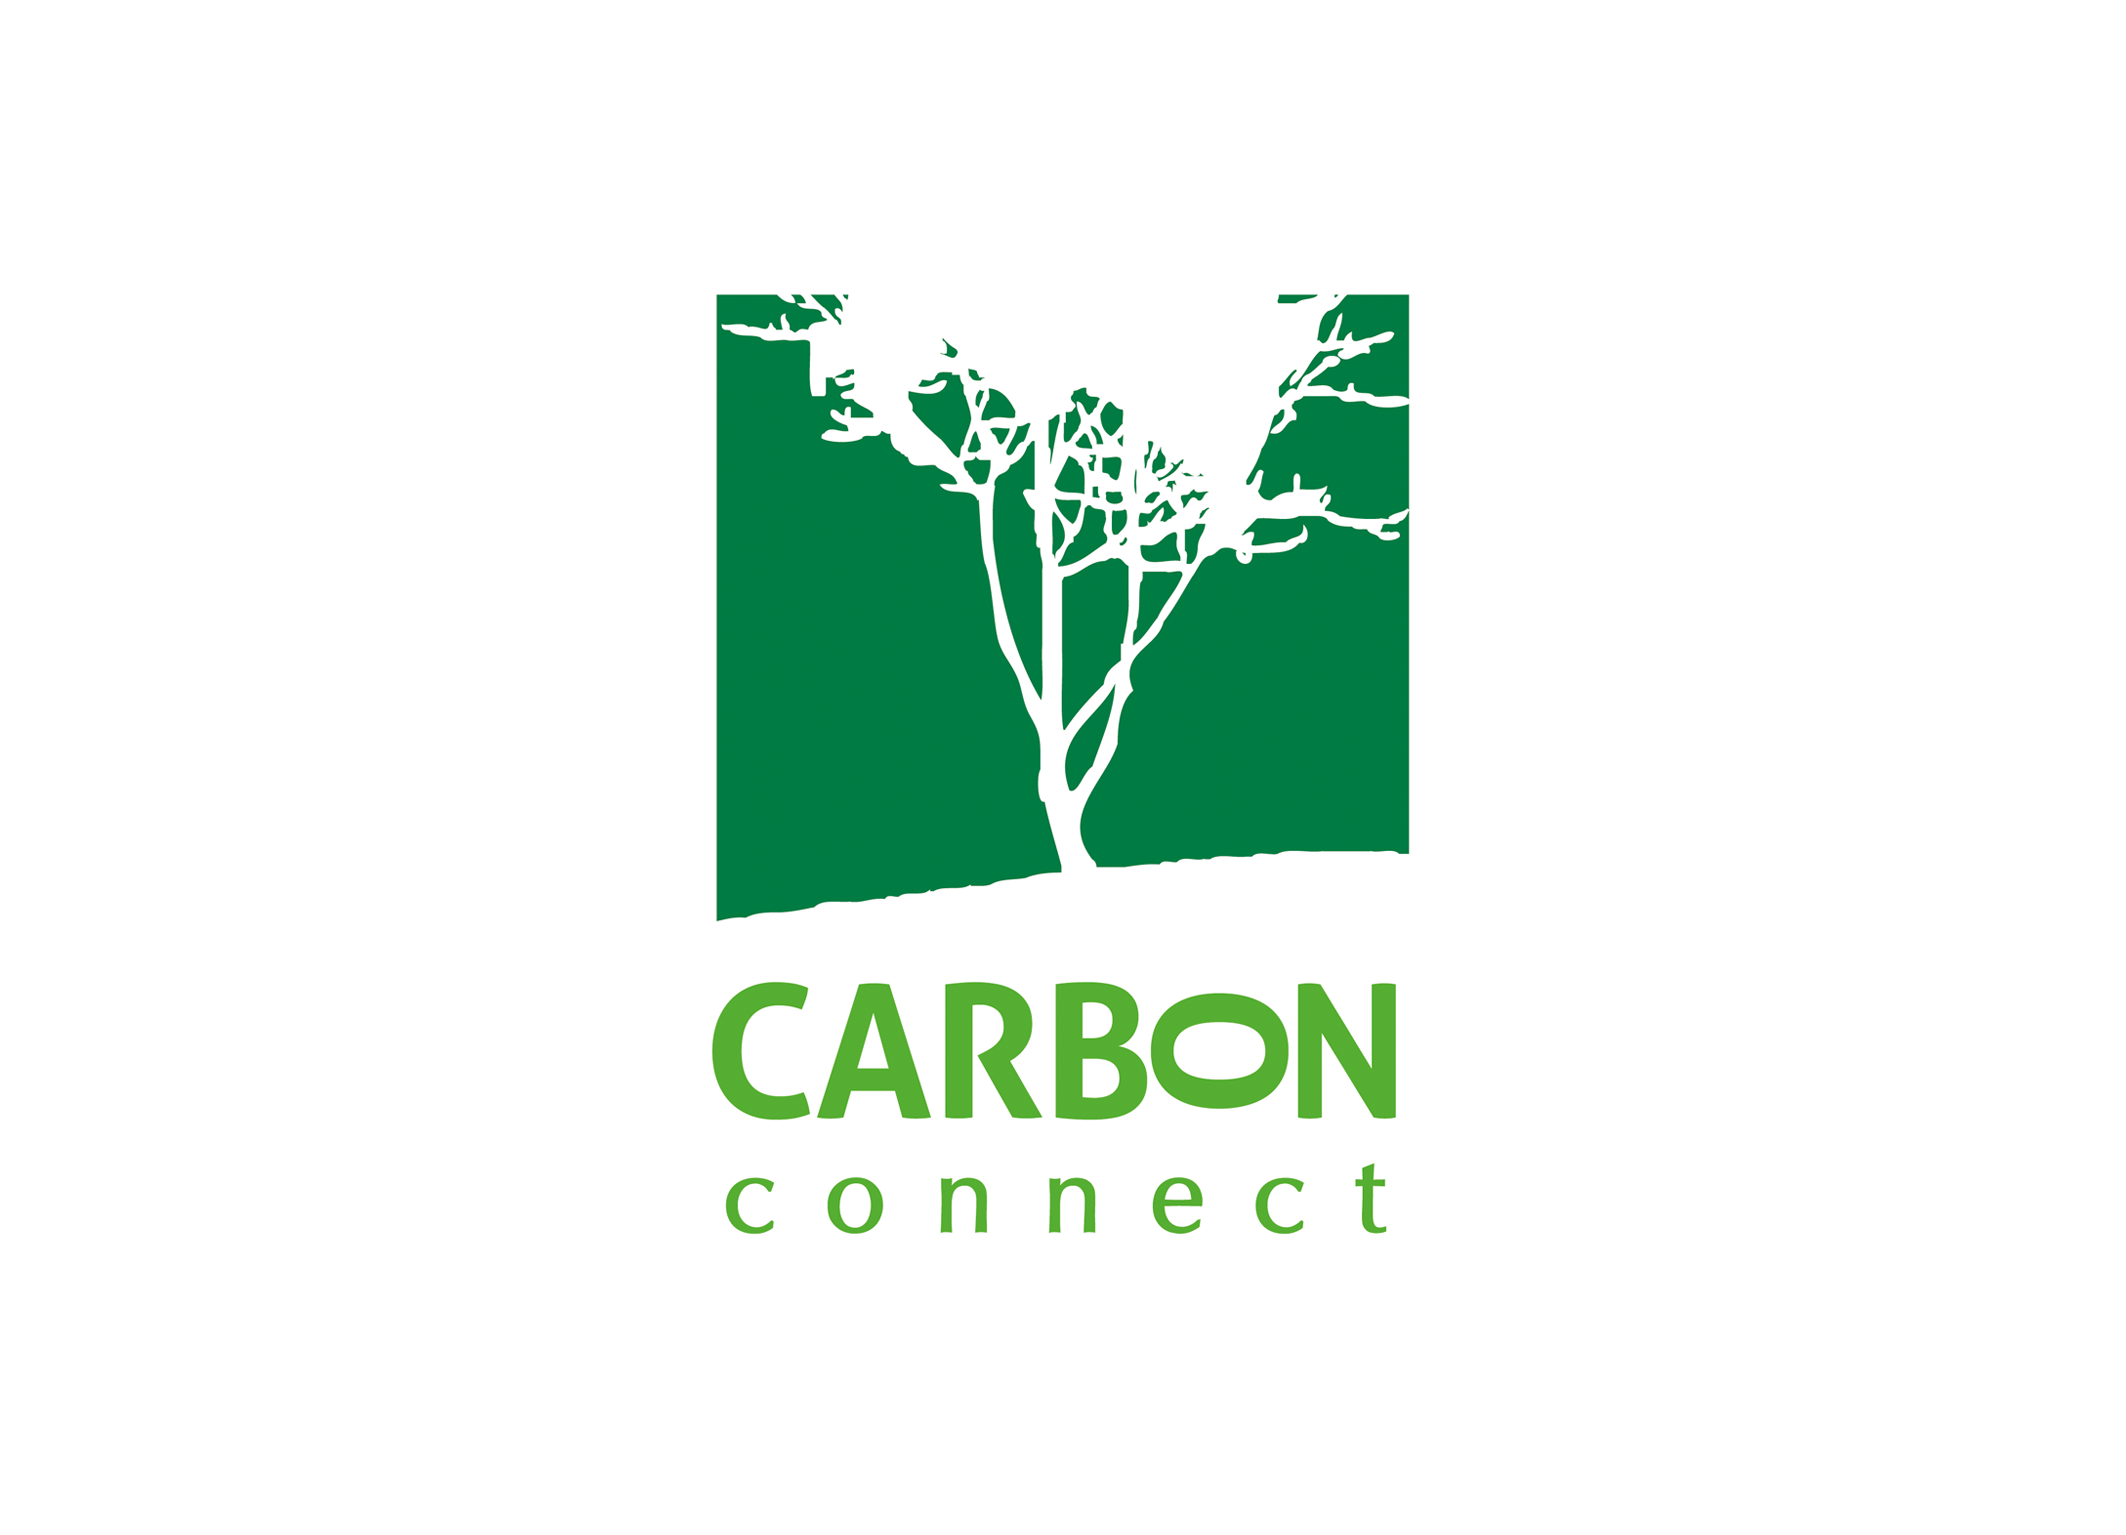 Carbon Connect